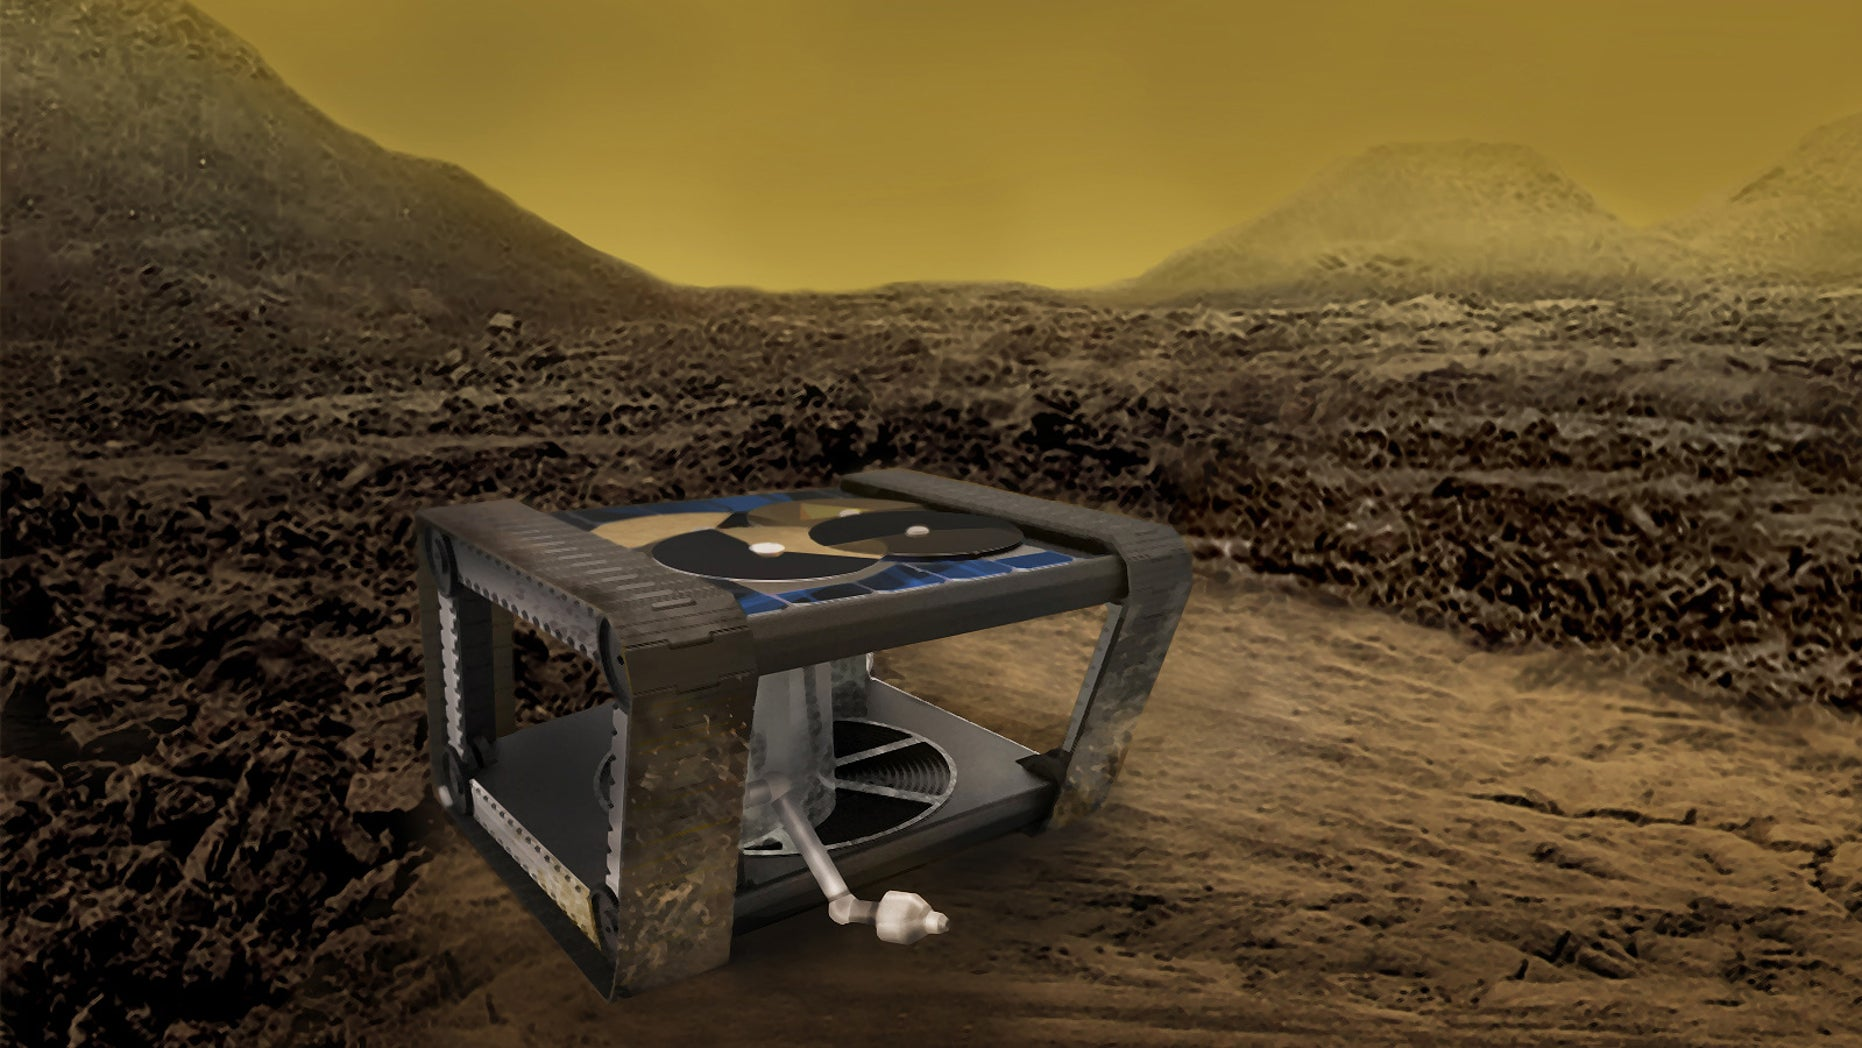 Artist's illustration of the Automaton Rover for Extreme Environments (AREE), a concept vehicle inspired by mechanical computers that could someday explore the surface of Venus.